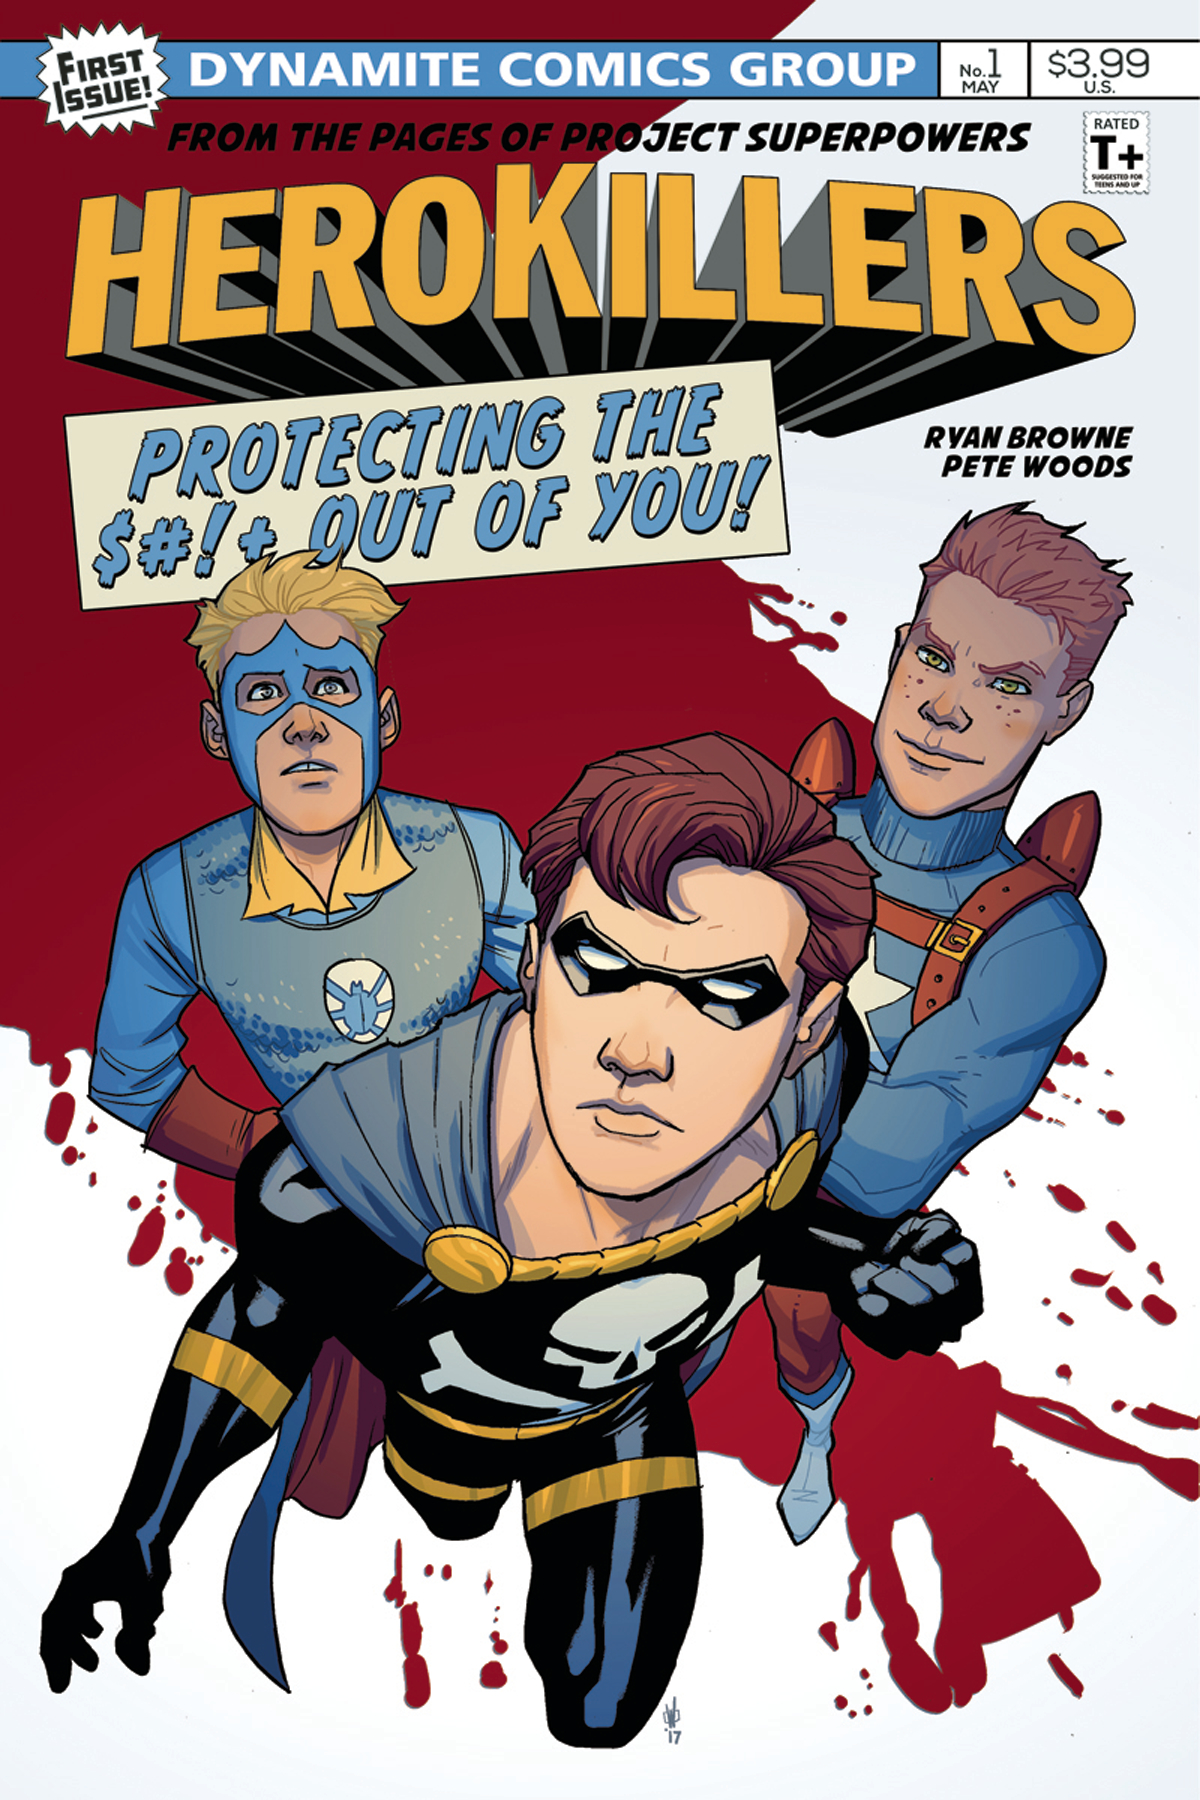 PROJECT SUPERPOWERS HERO KILLERS #1 CVR A WOODS